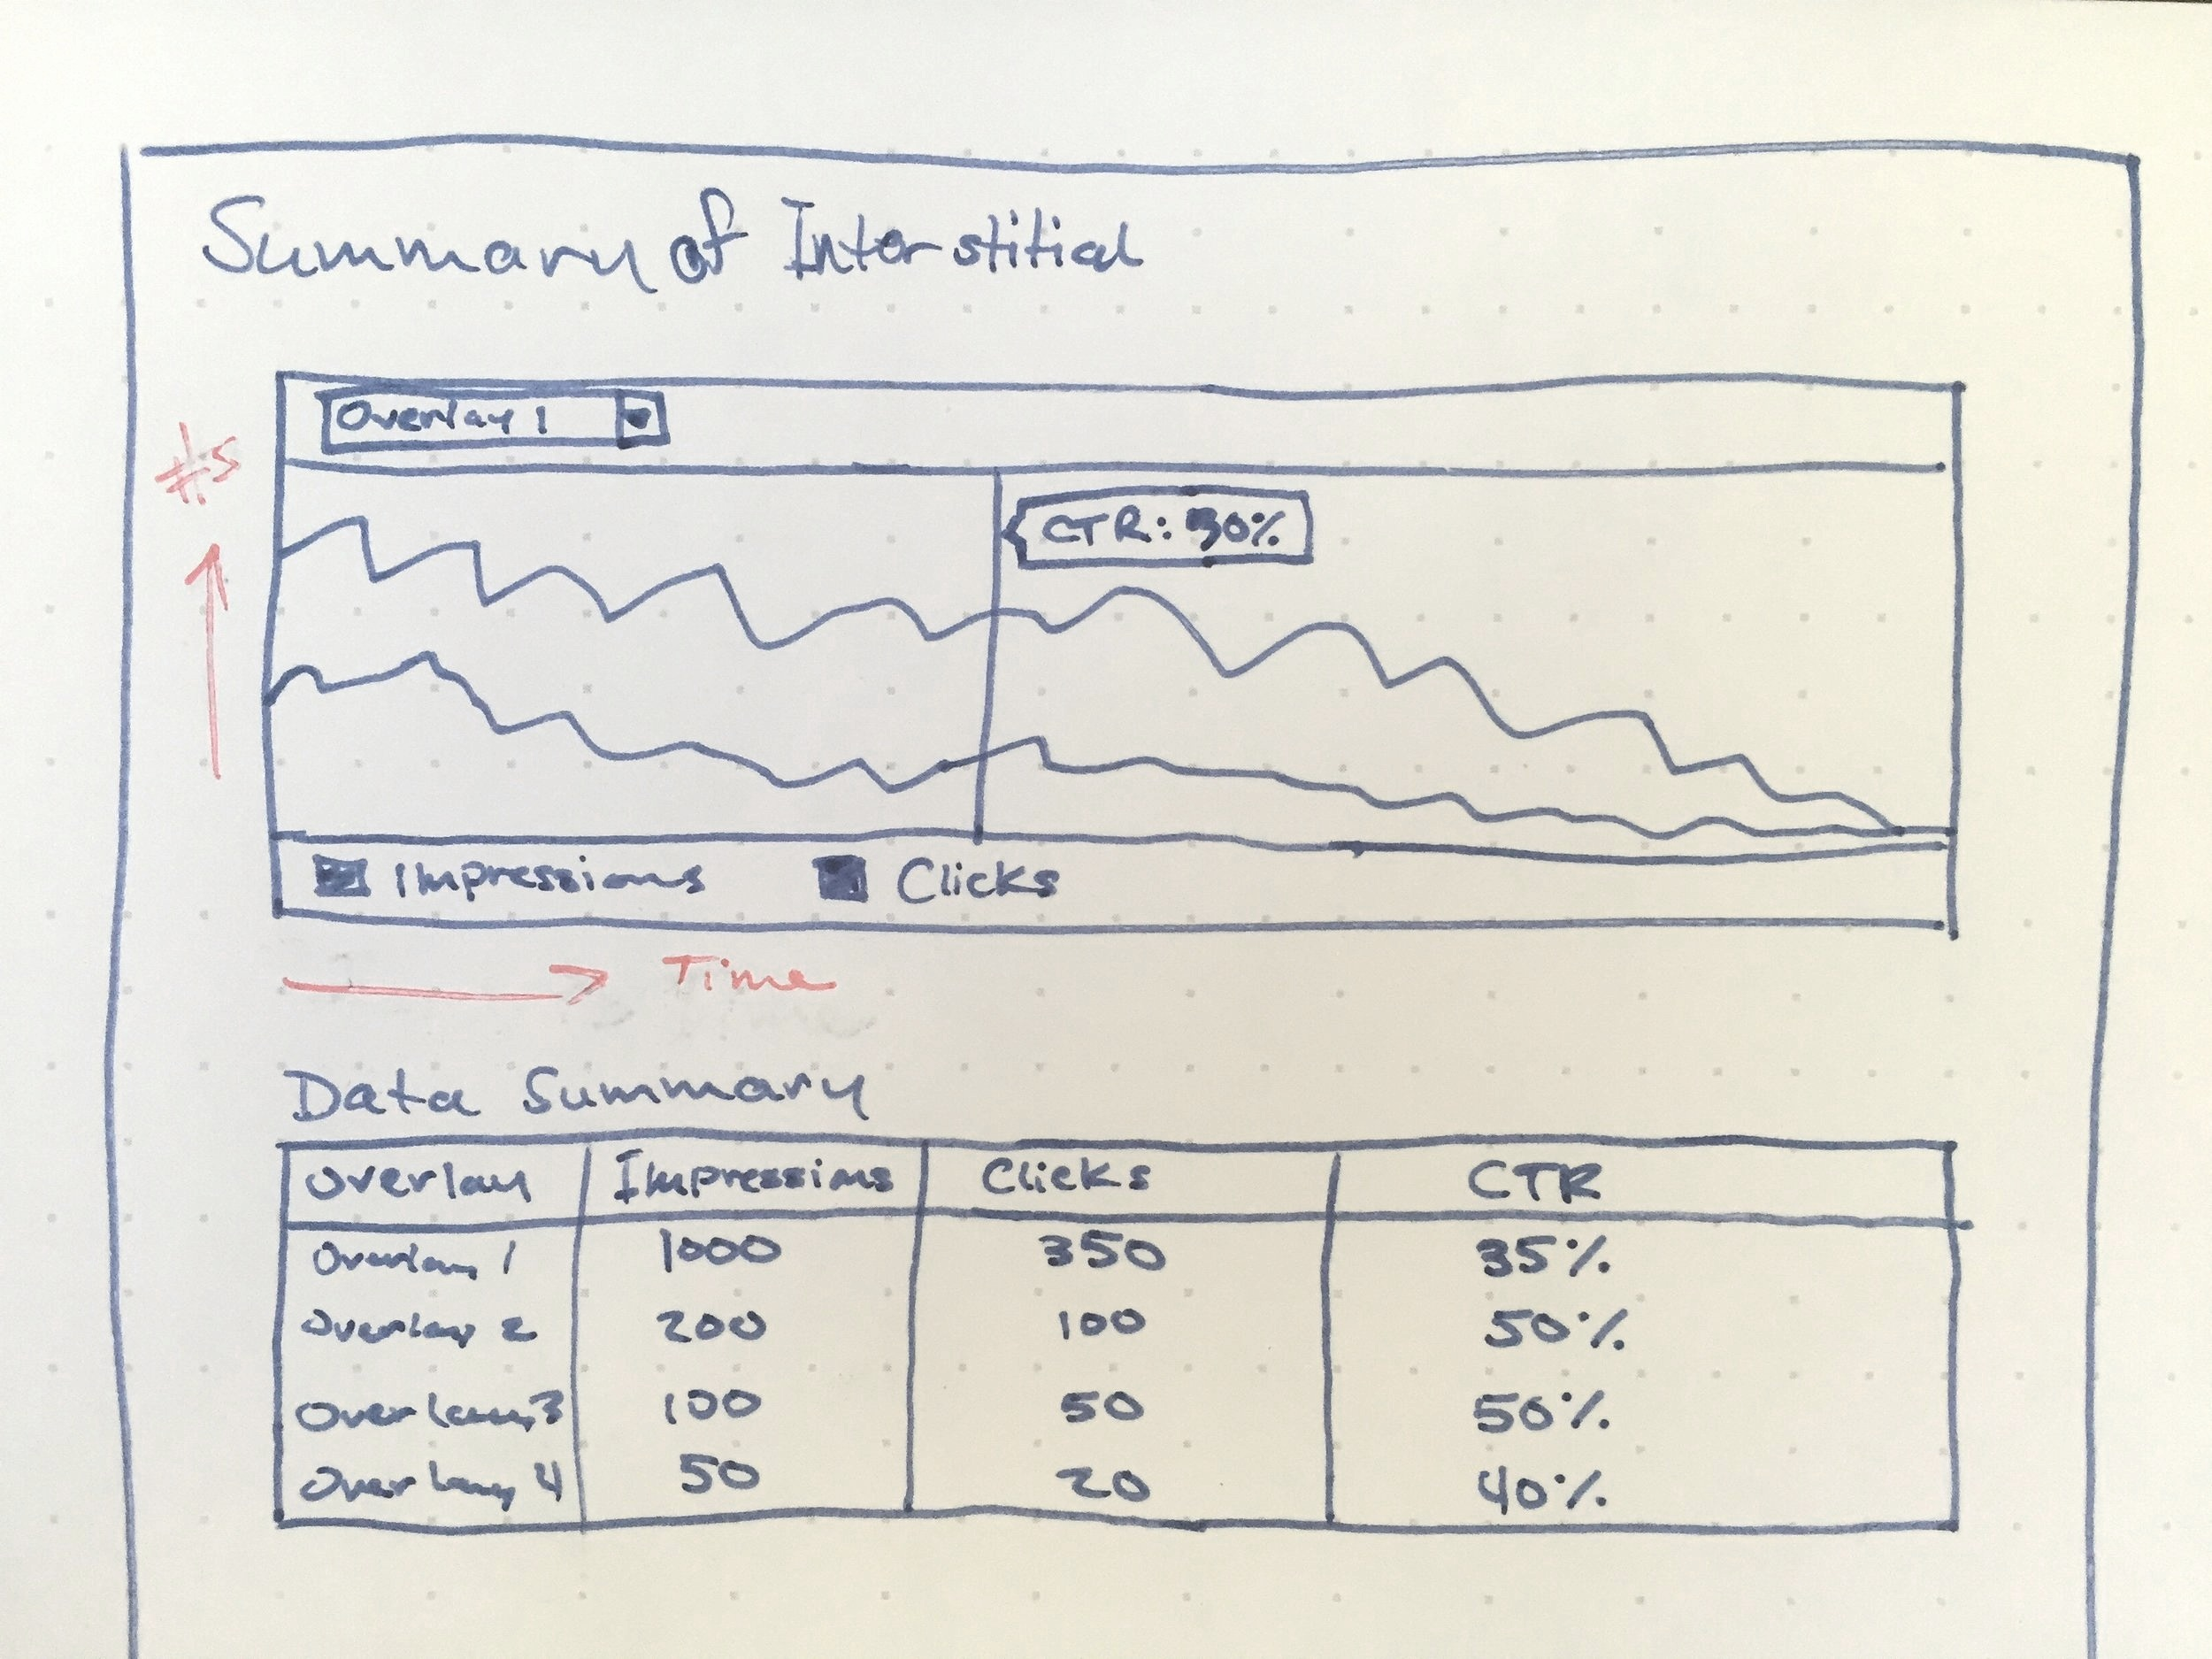 I often seize inspiration when it hits me by sketching out ideas on how requirements might be rendered even during the early stages. Here is such a sketch of how messaging data might be displayed after a day of interviews with users.